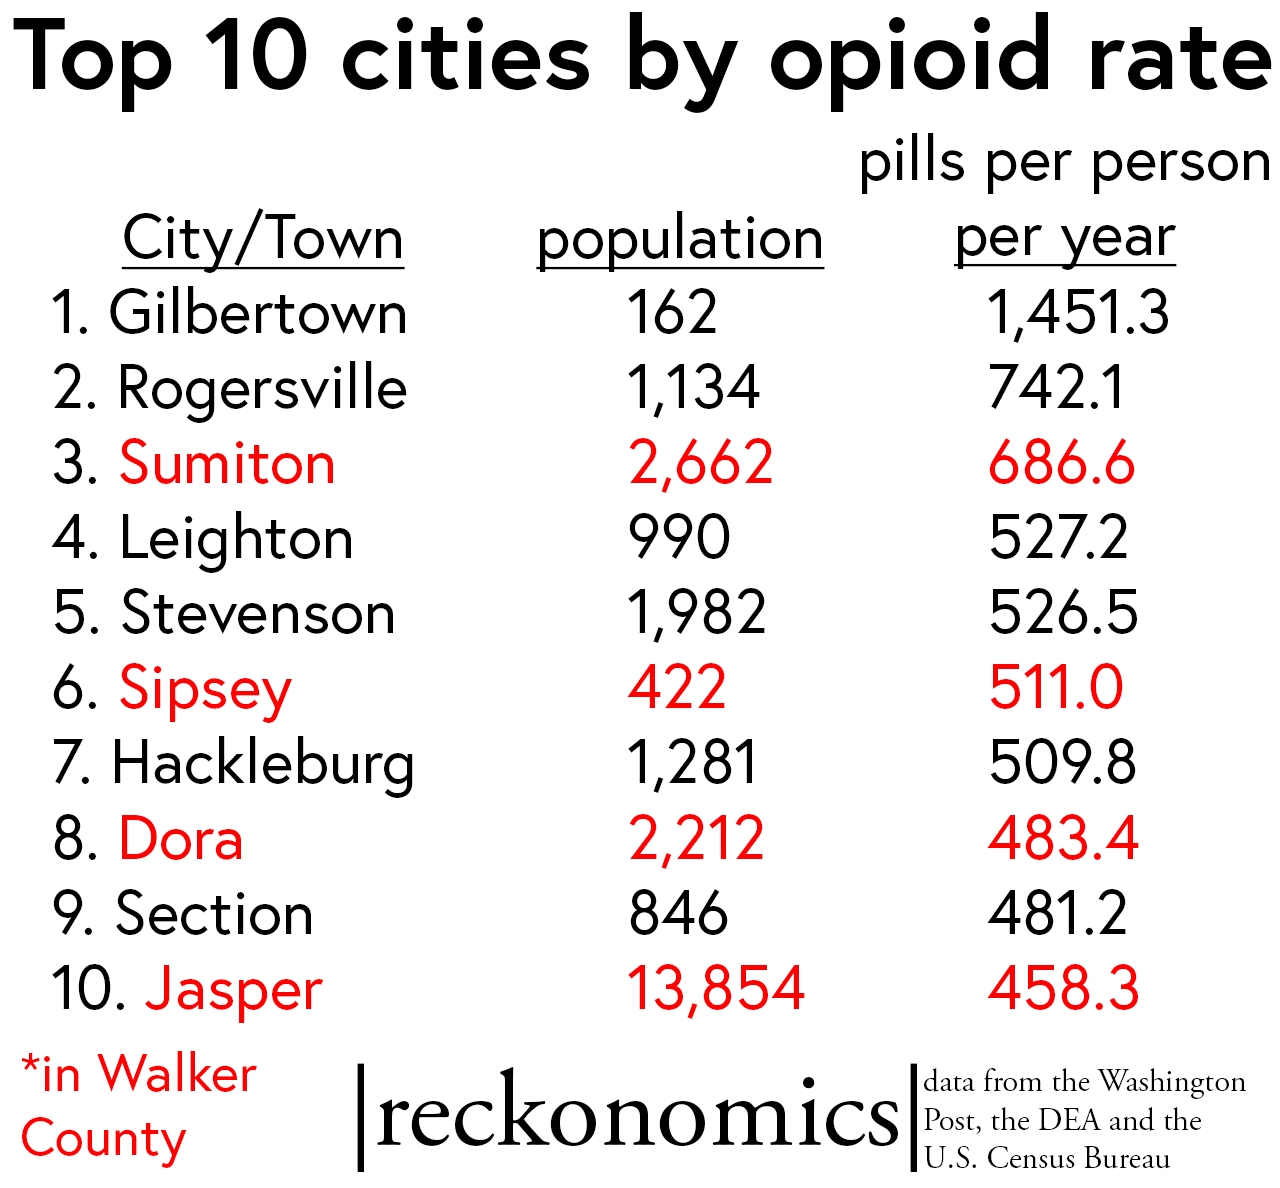 Top 10 Alabama cities/towns for opioids